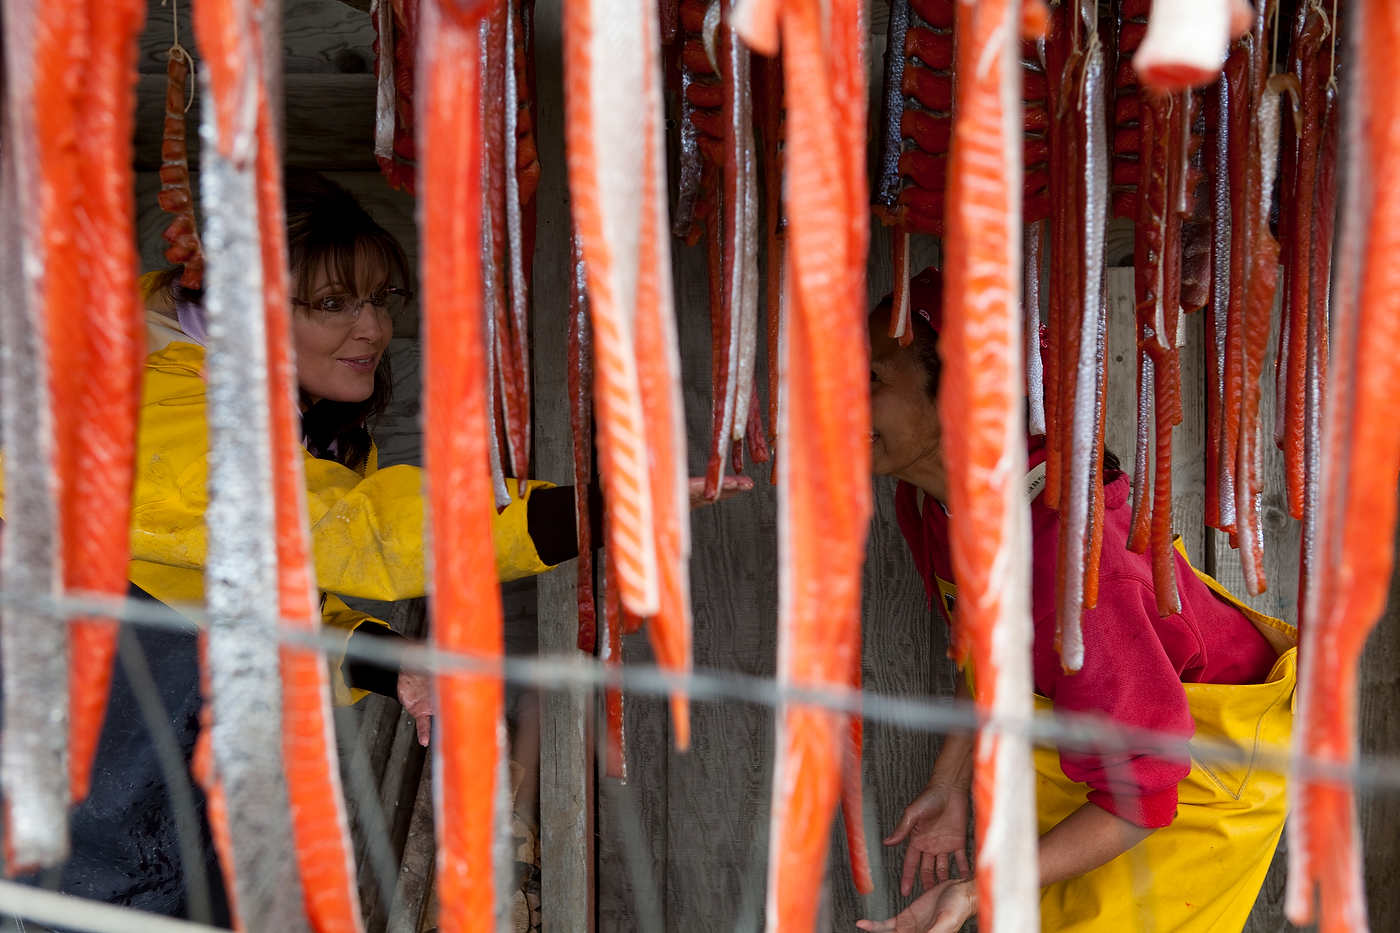 Sarah Palin's cousin Ina Bouker shows how salmon is smoked in Ekok, an Eskimo summer fishing village.